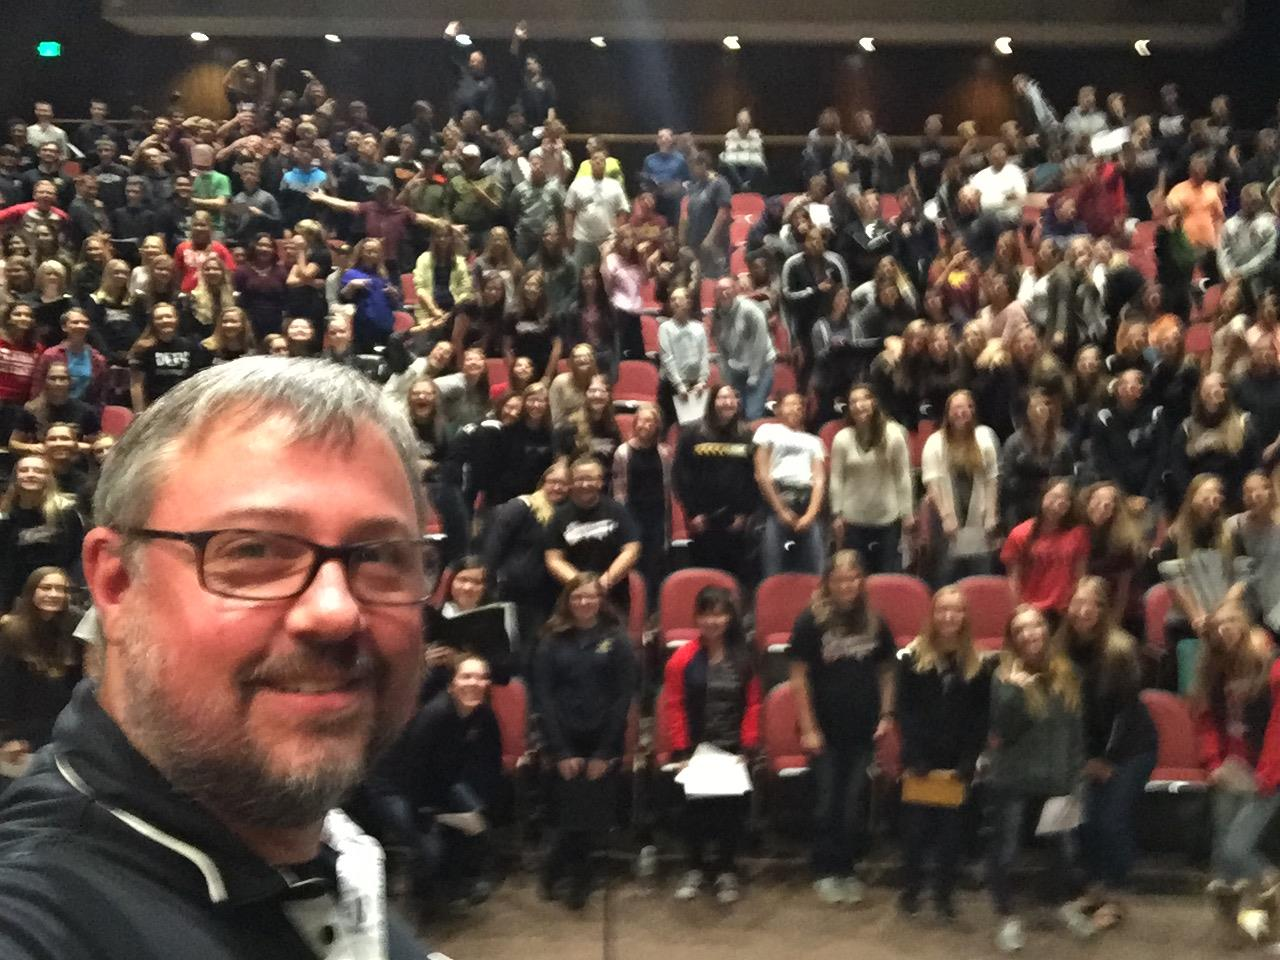 Dr. Kingsbury's selfie with Singfest participants